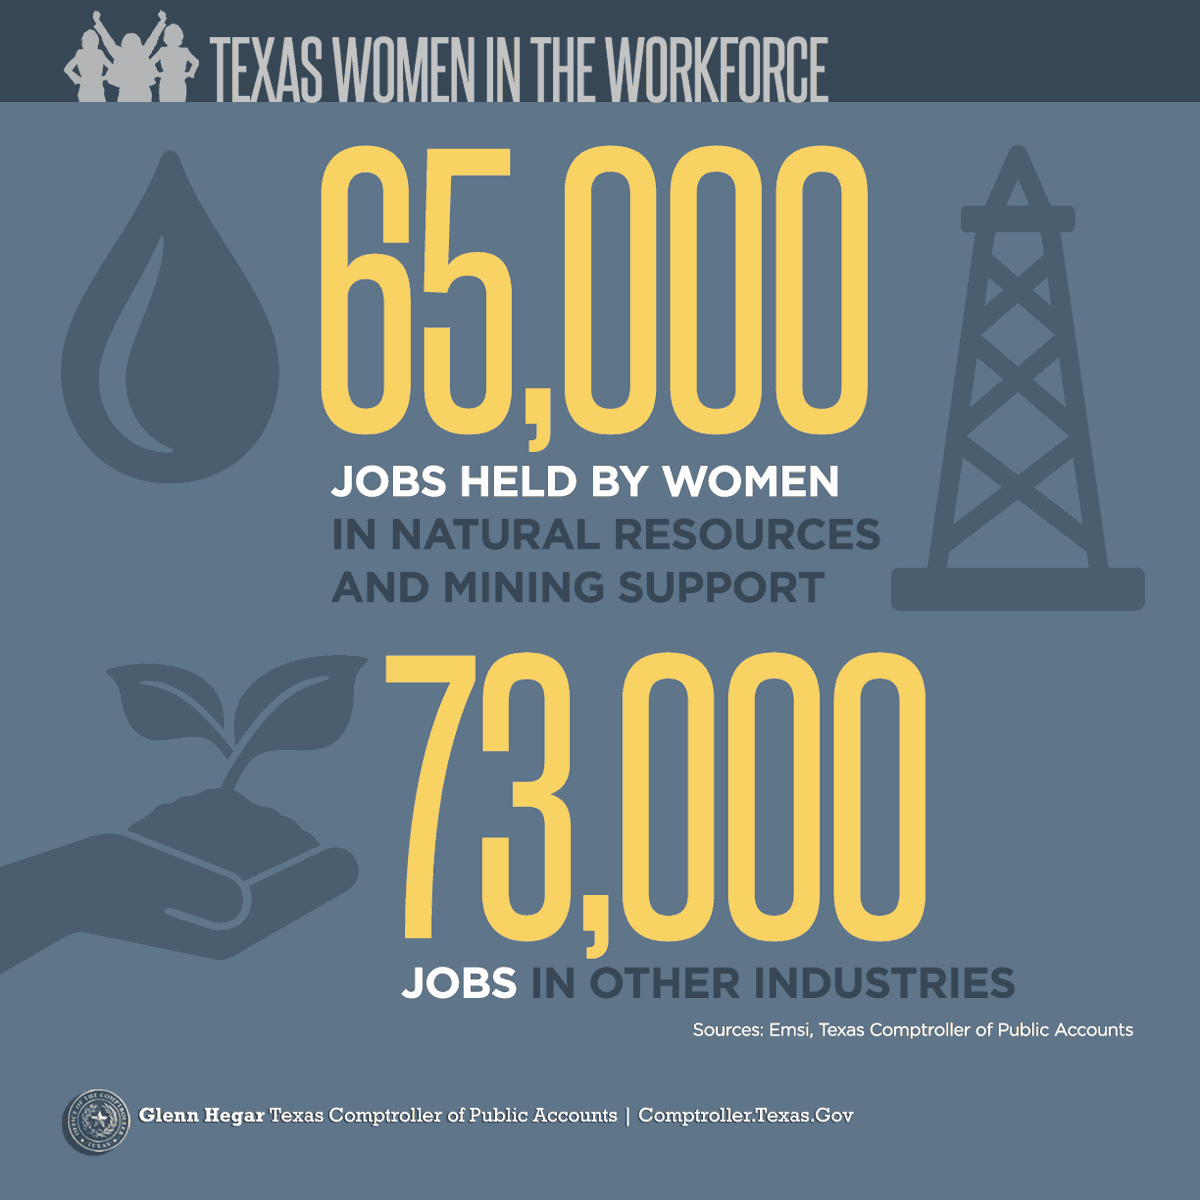 65,000 jobs held by women in natural resources and mining support 73,000 jobs in other industries. Sources: Emsi, Texas Comptroller of Public Accounts